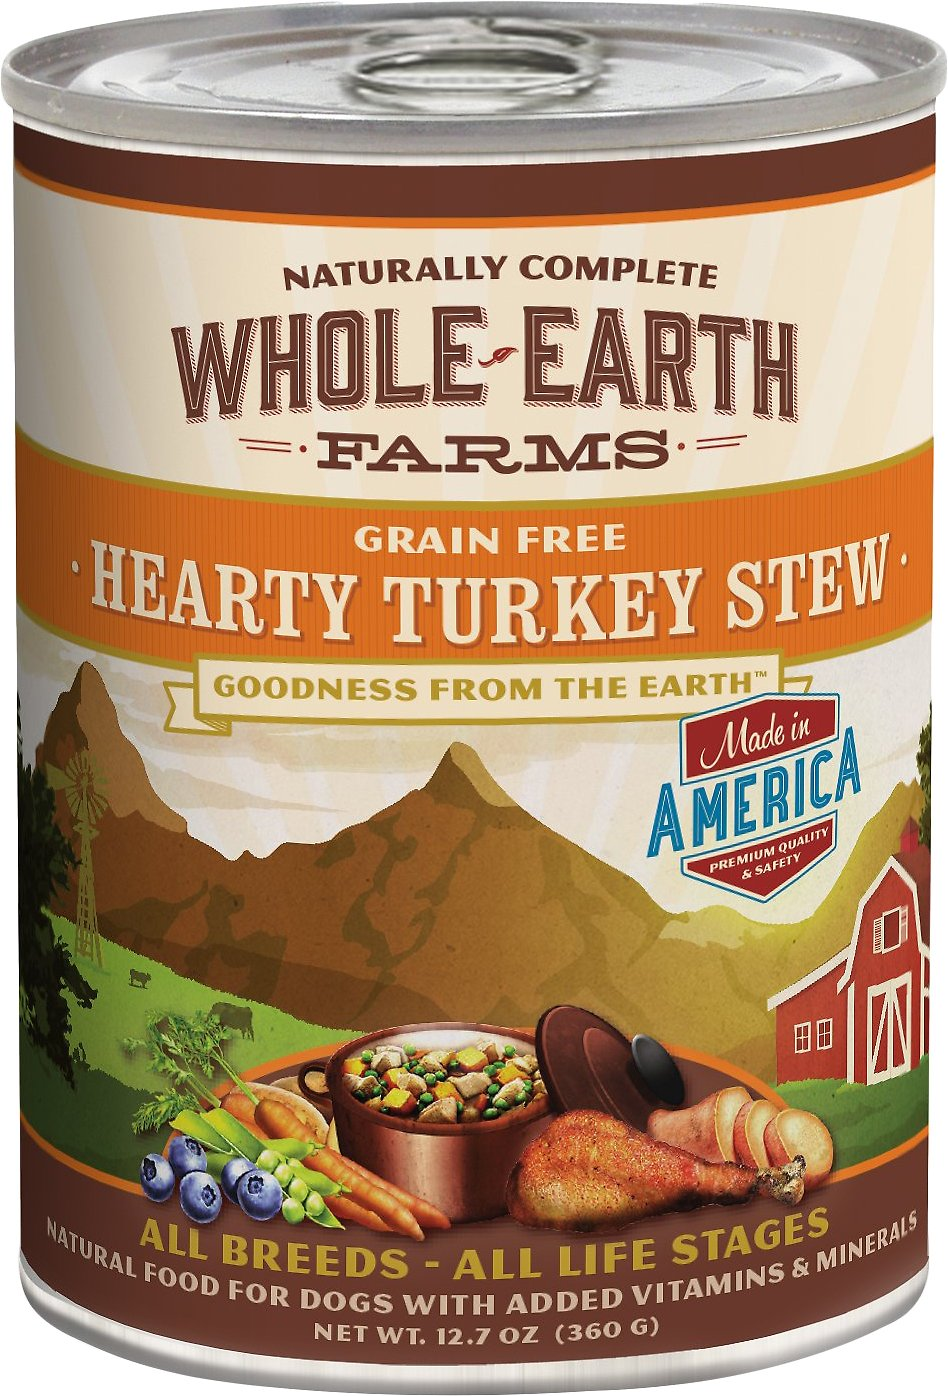 Whole Earth Farms Grain-Free Hearty Turkey Stew Canned Dog Food, 12.7-oz